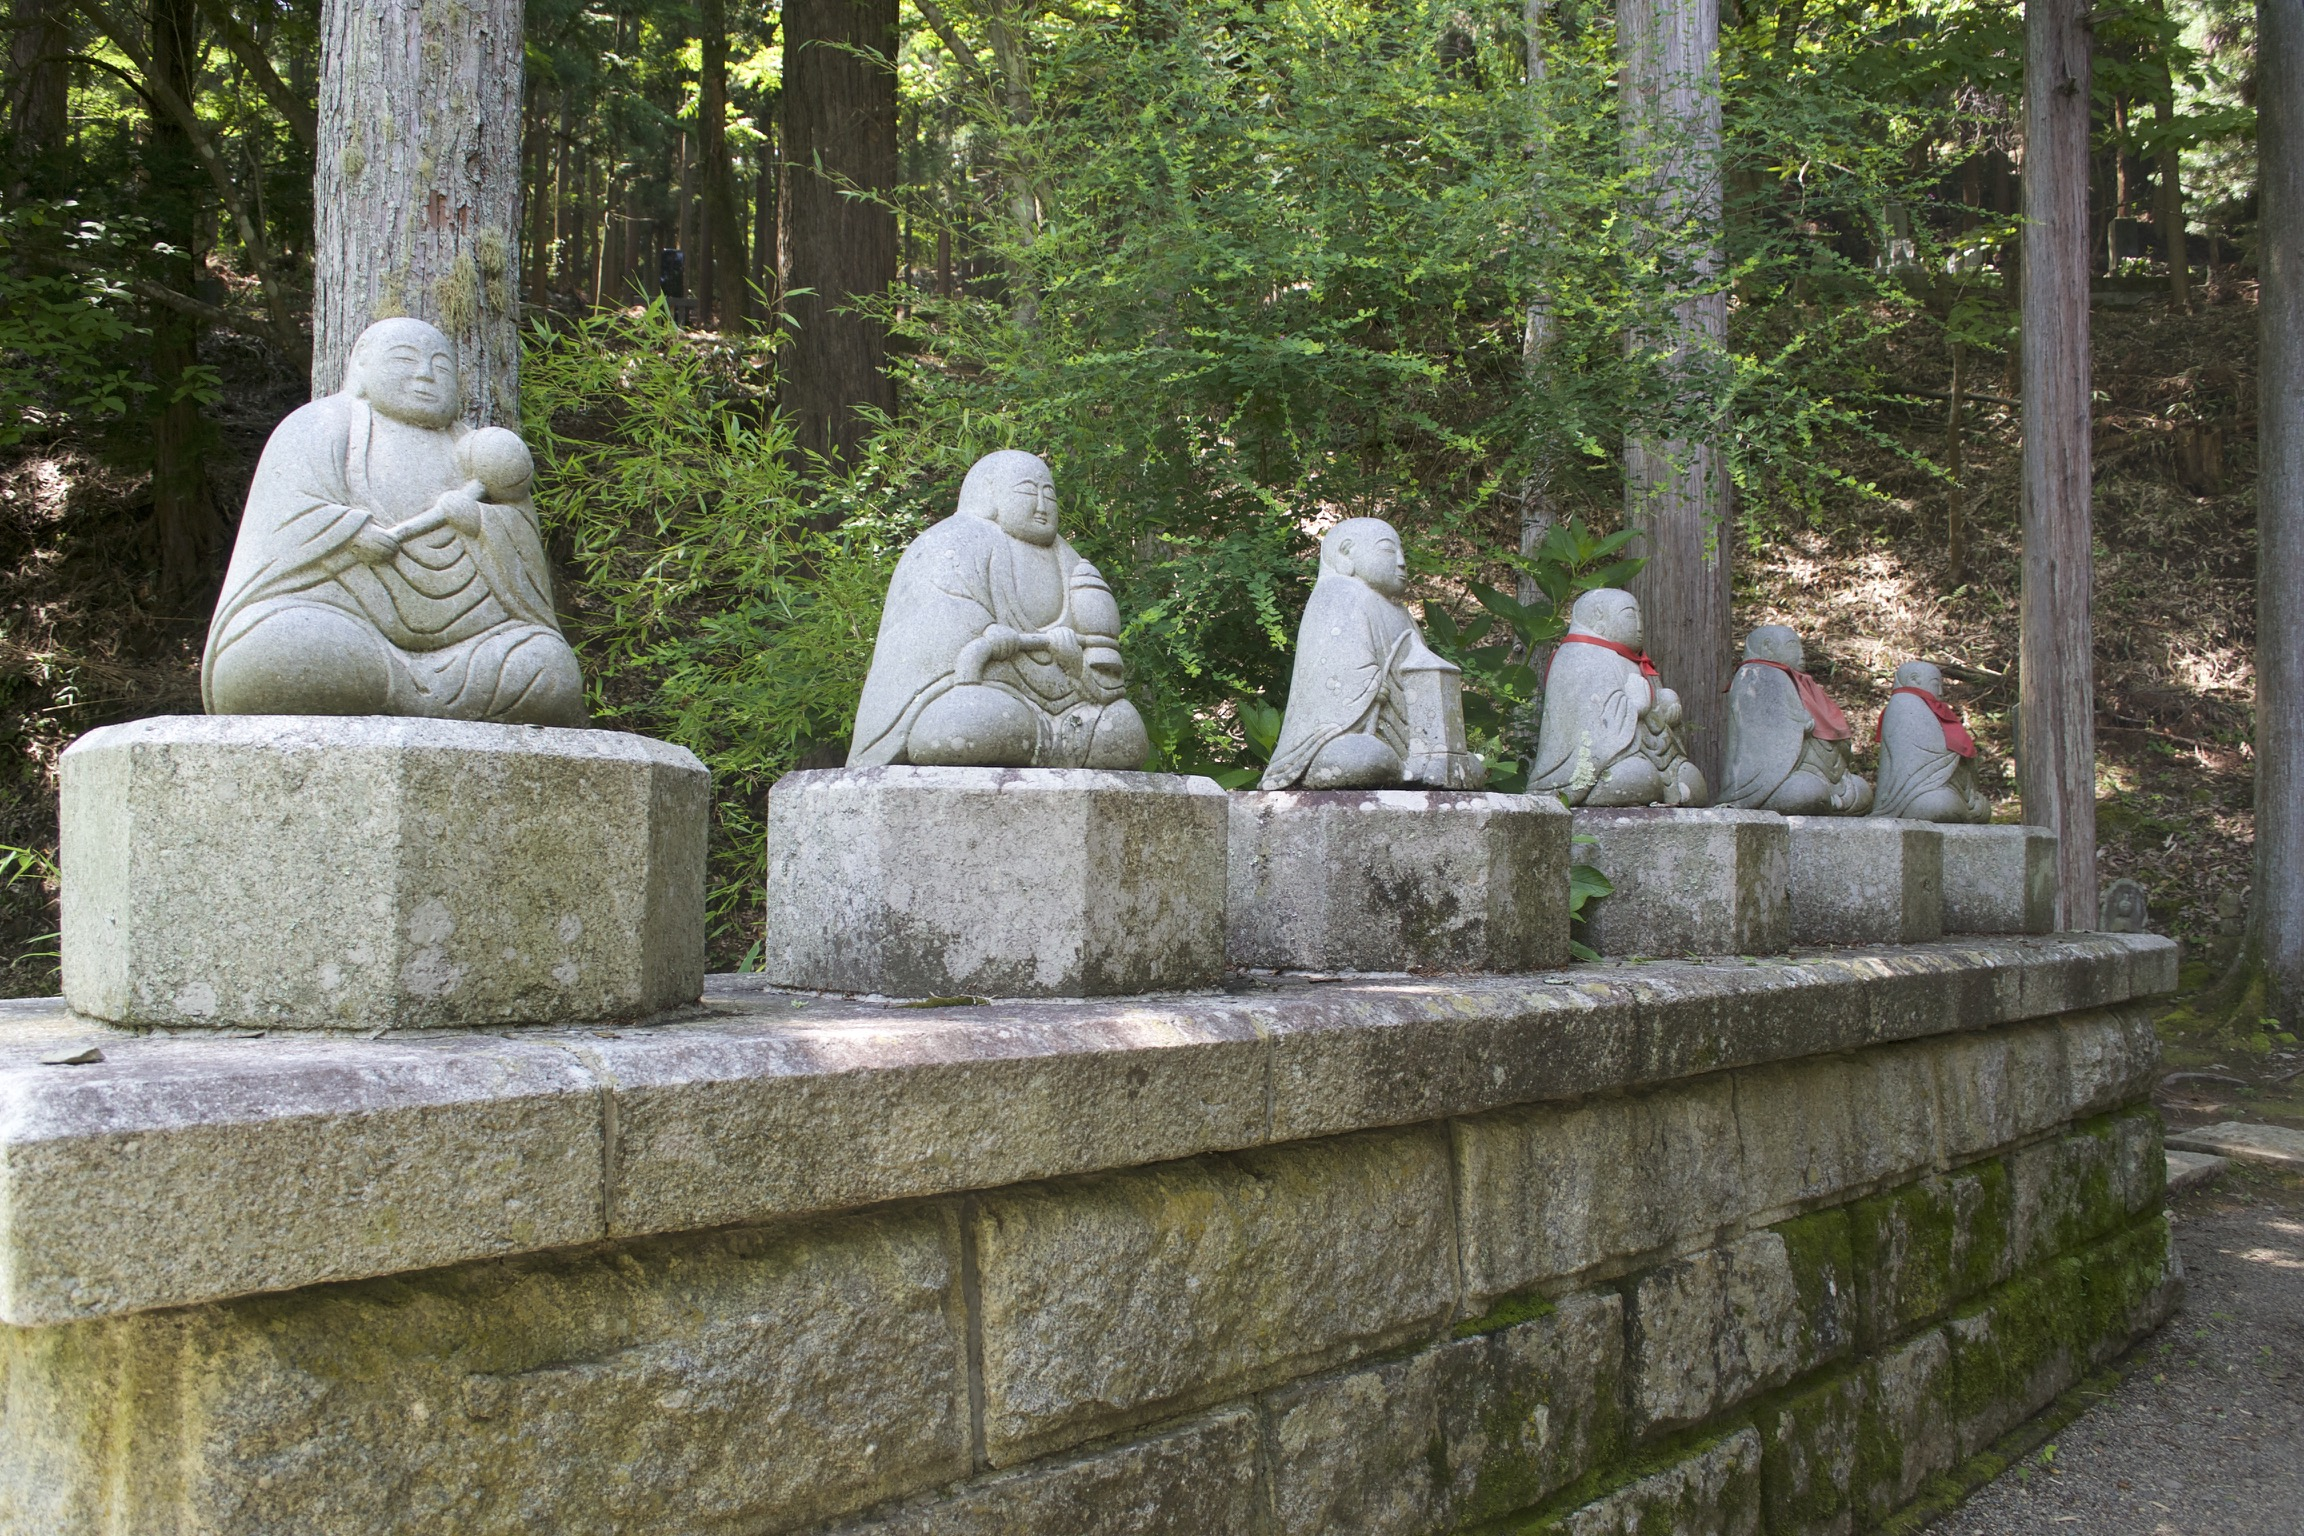 Six stone buddhas sit cross-legged, some with red cloth bibs.